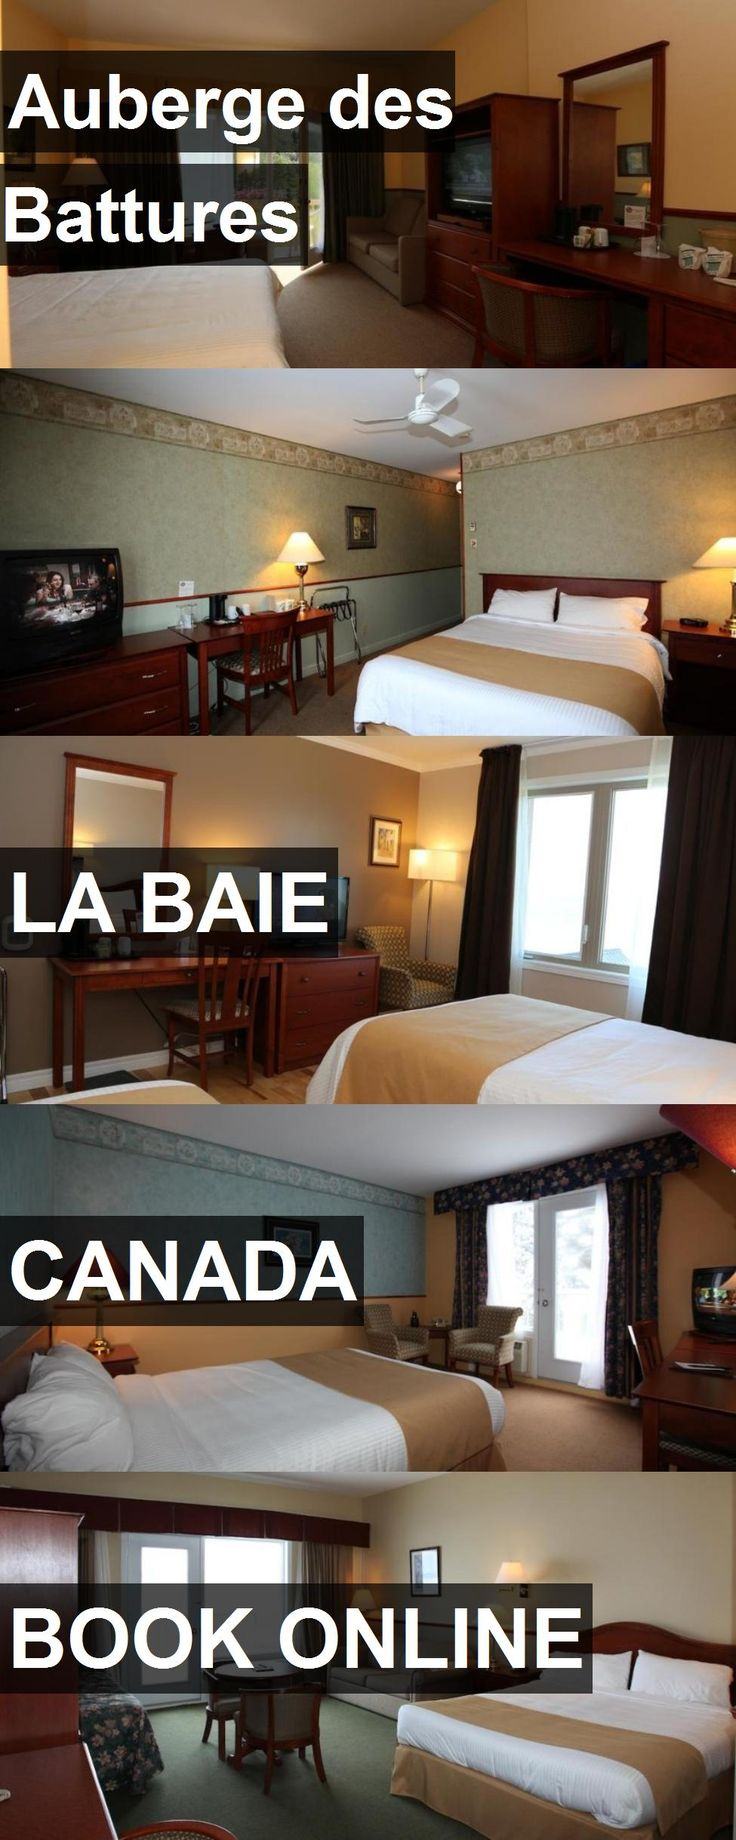 Hotel Auberge des Battures in La Baie, Canada. For more information, photos, reviews and best prices please follow the link. #Canada #LaBaie #travel #vacation #hotel